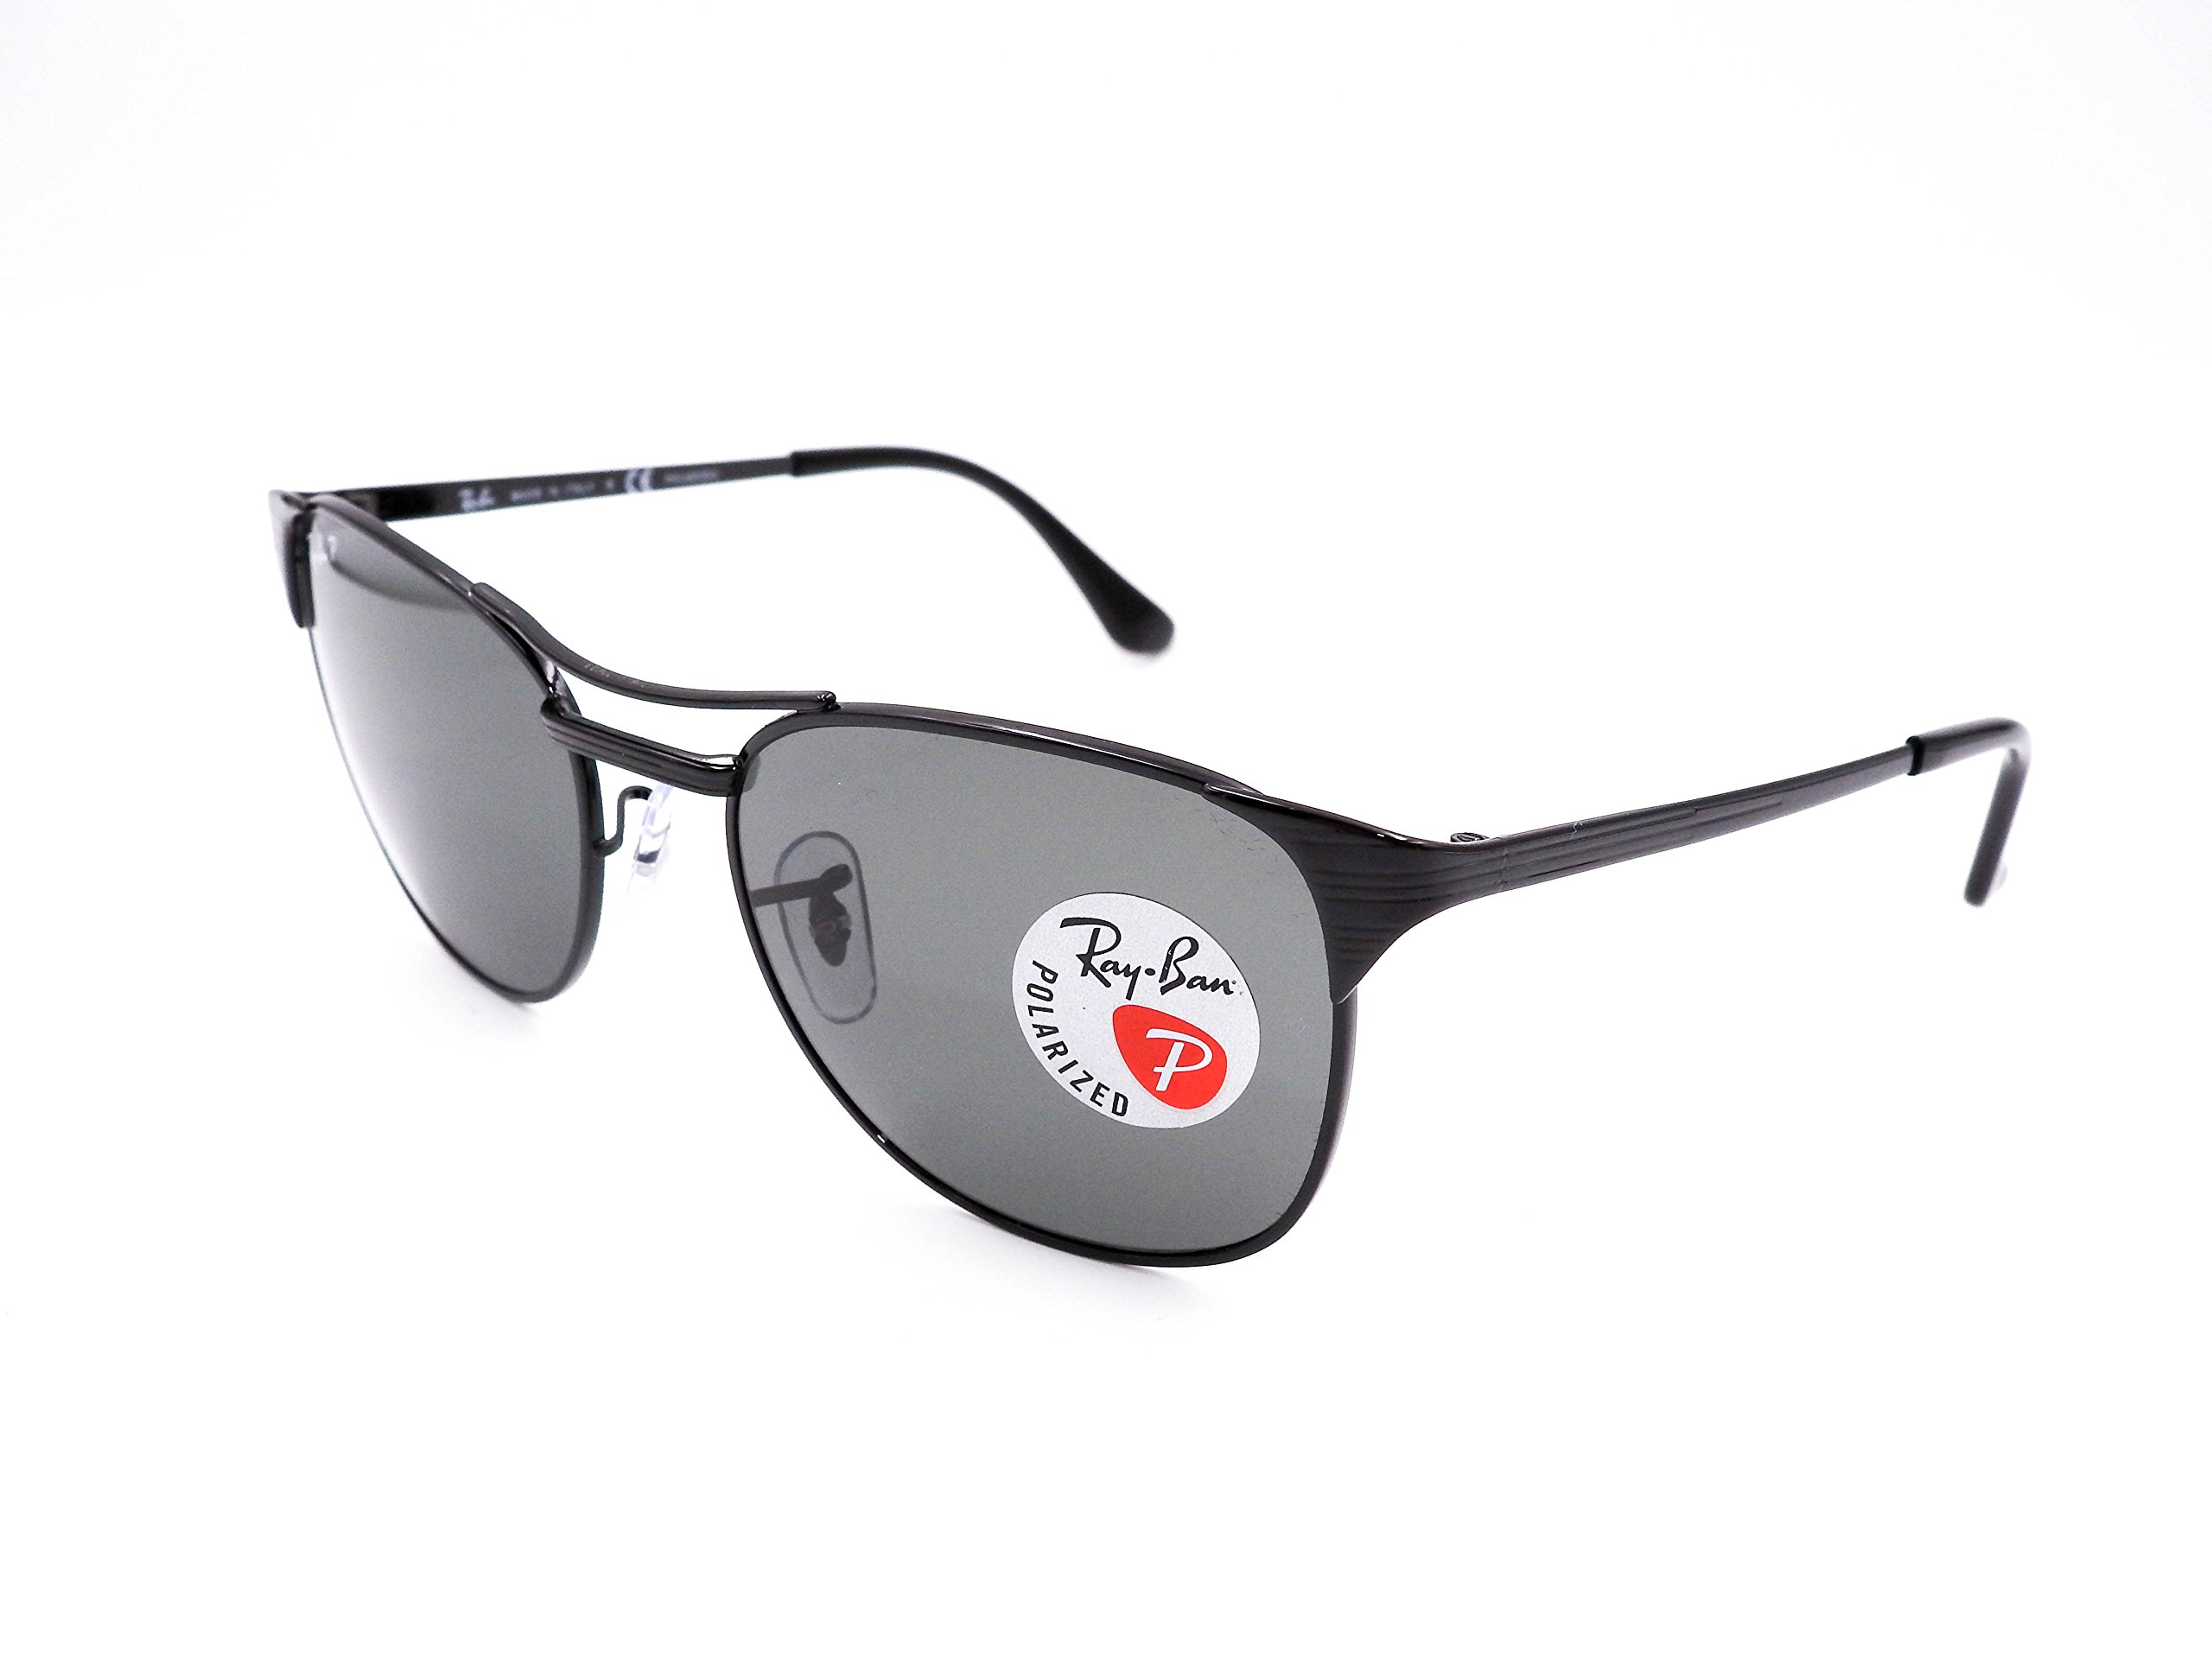 Ray-Ban Signet RB3429 002/58 Sunglasses Black Frame 55mm w/ Polarized Crystal Green Lens                                      by Ray-Ban